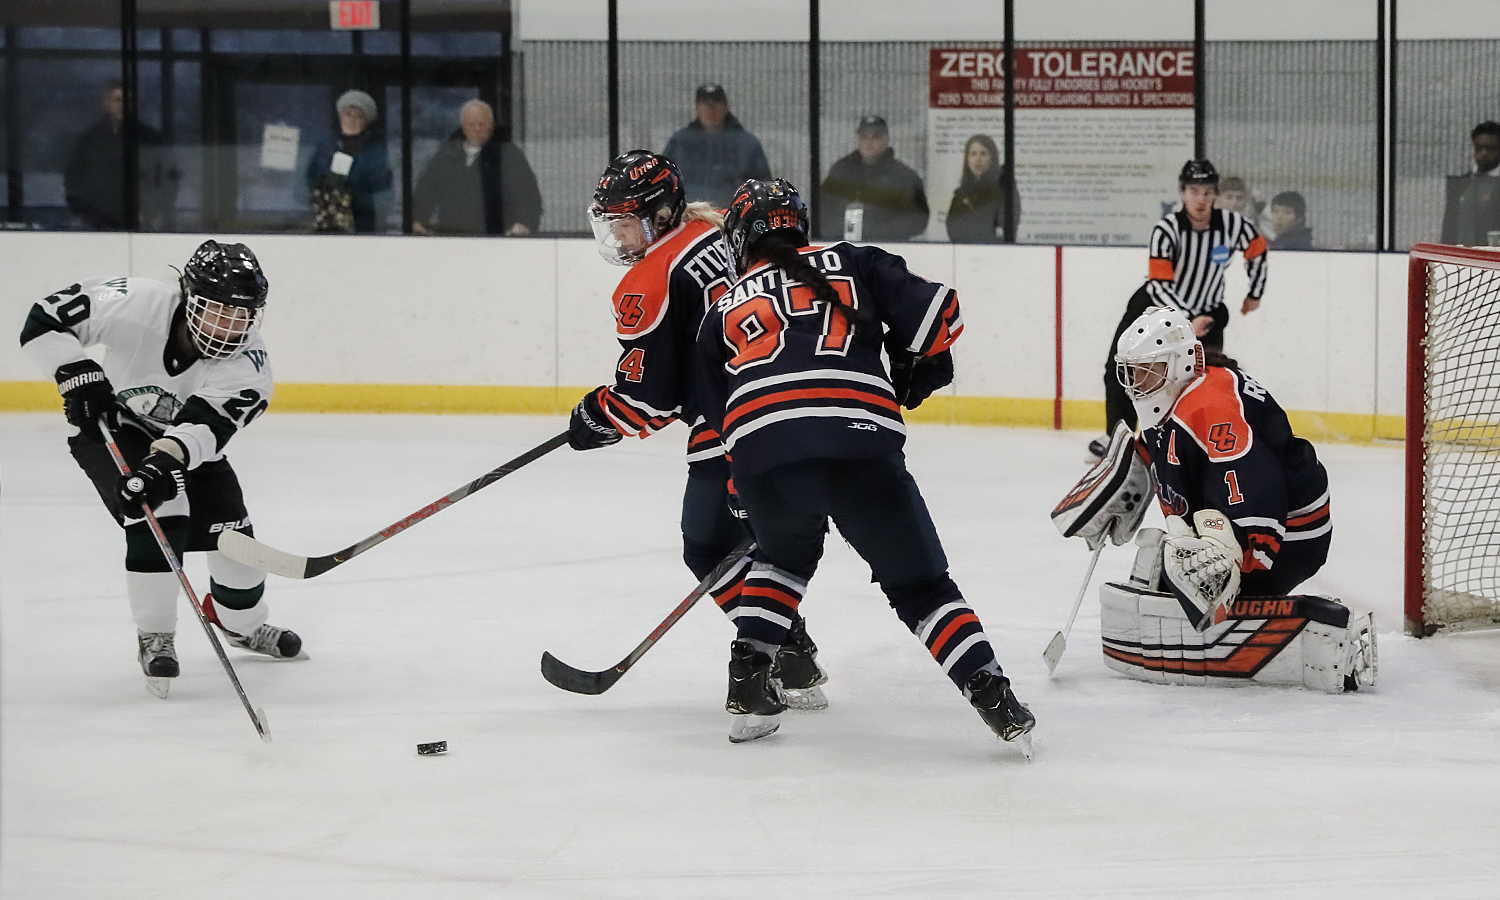 Julianna Gong '23 challenges the Utica defense. William Smith Hockey won 2-1.